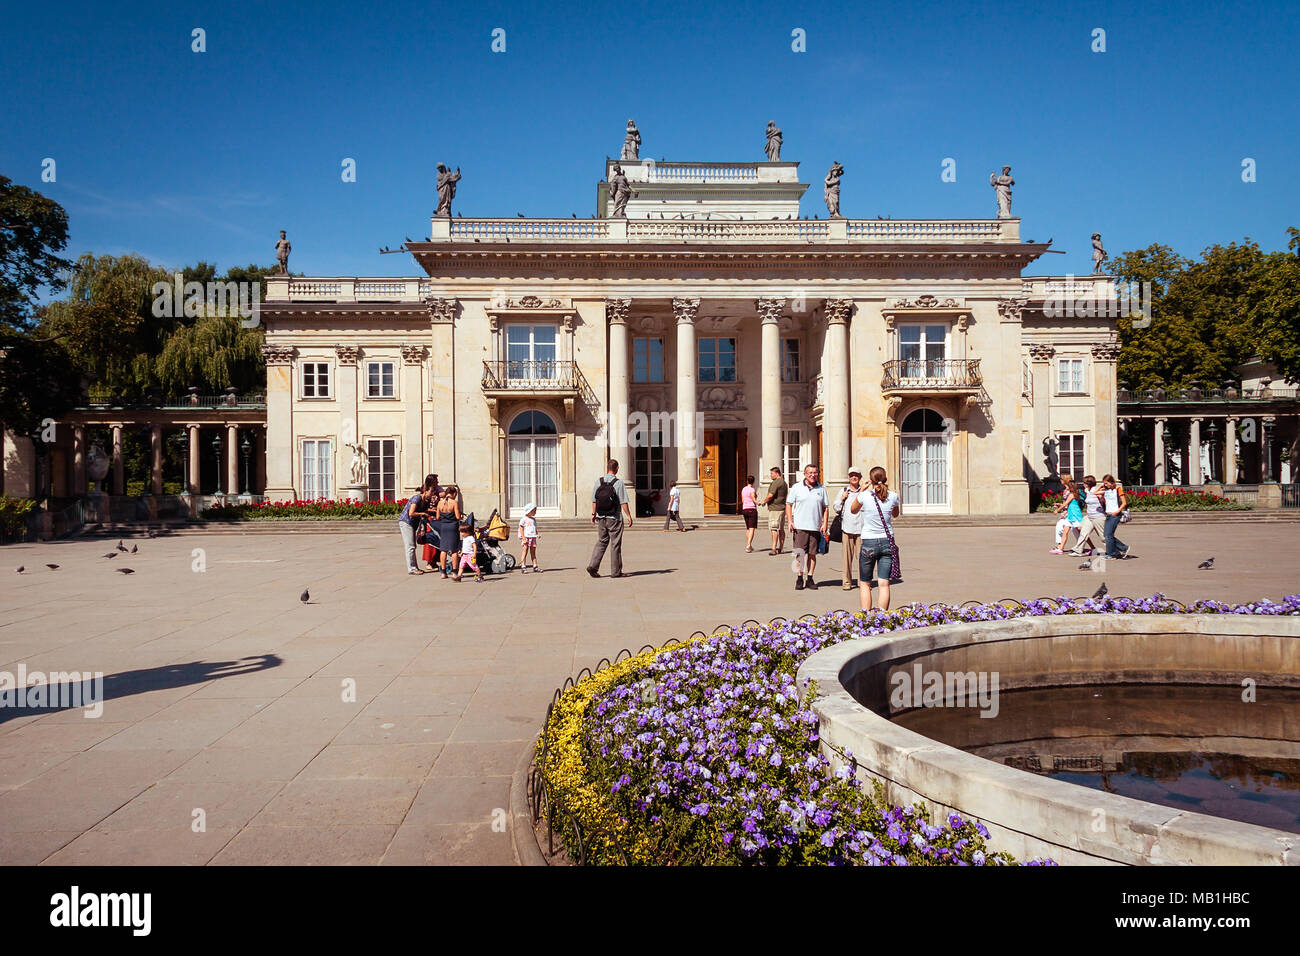 Popular tourist attraction Lazienki Royal Baths Park, fountain at the Palace on the Water WARSAW, POLAND - AUGUST 20, 2009 - Stock Image